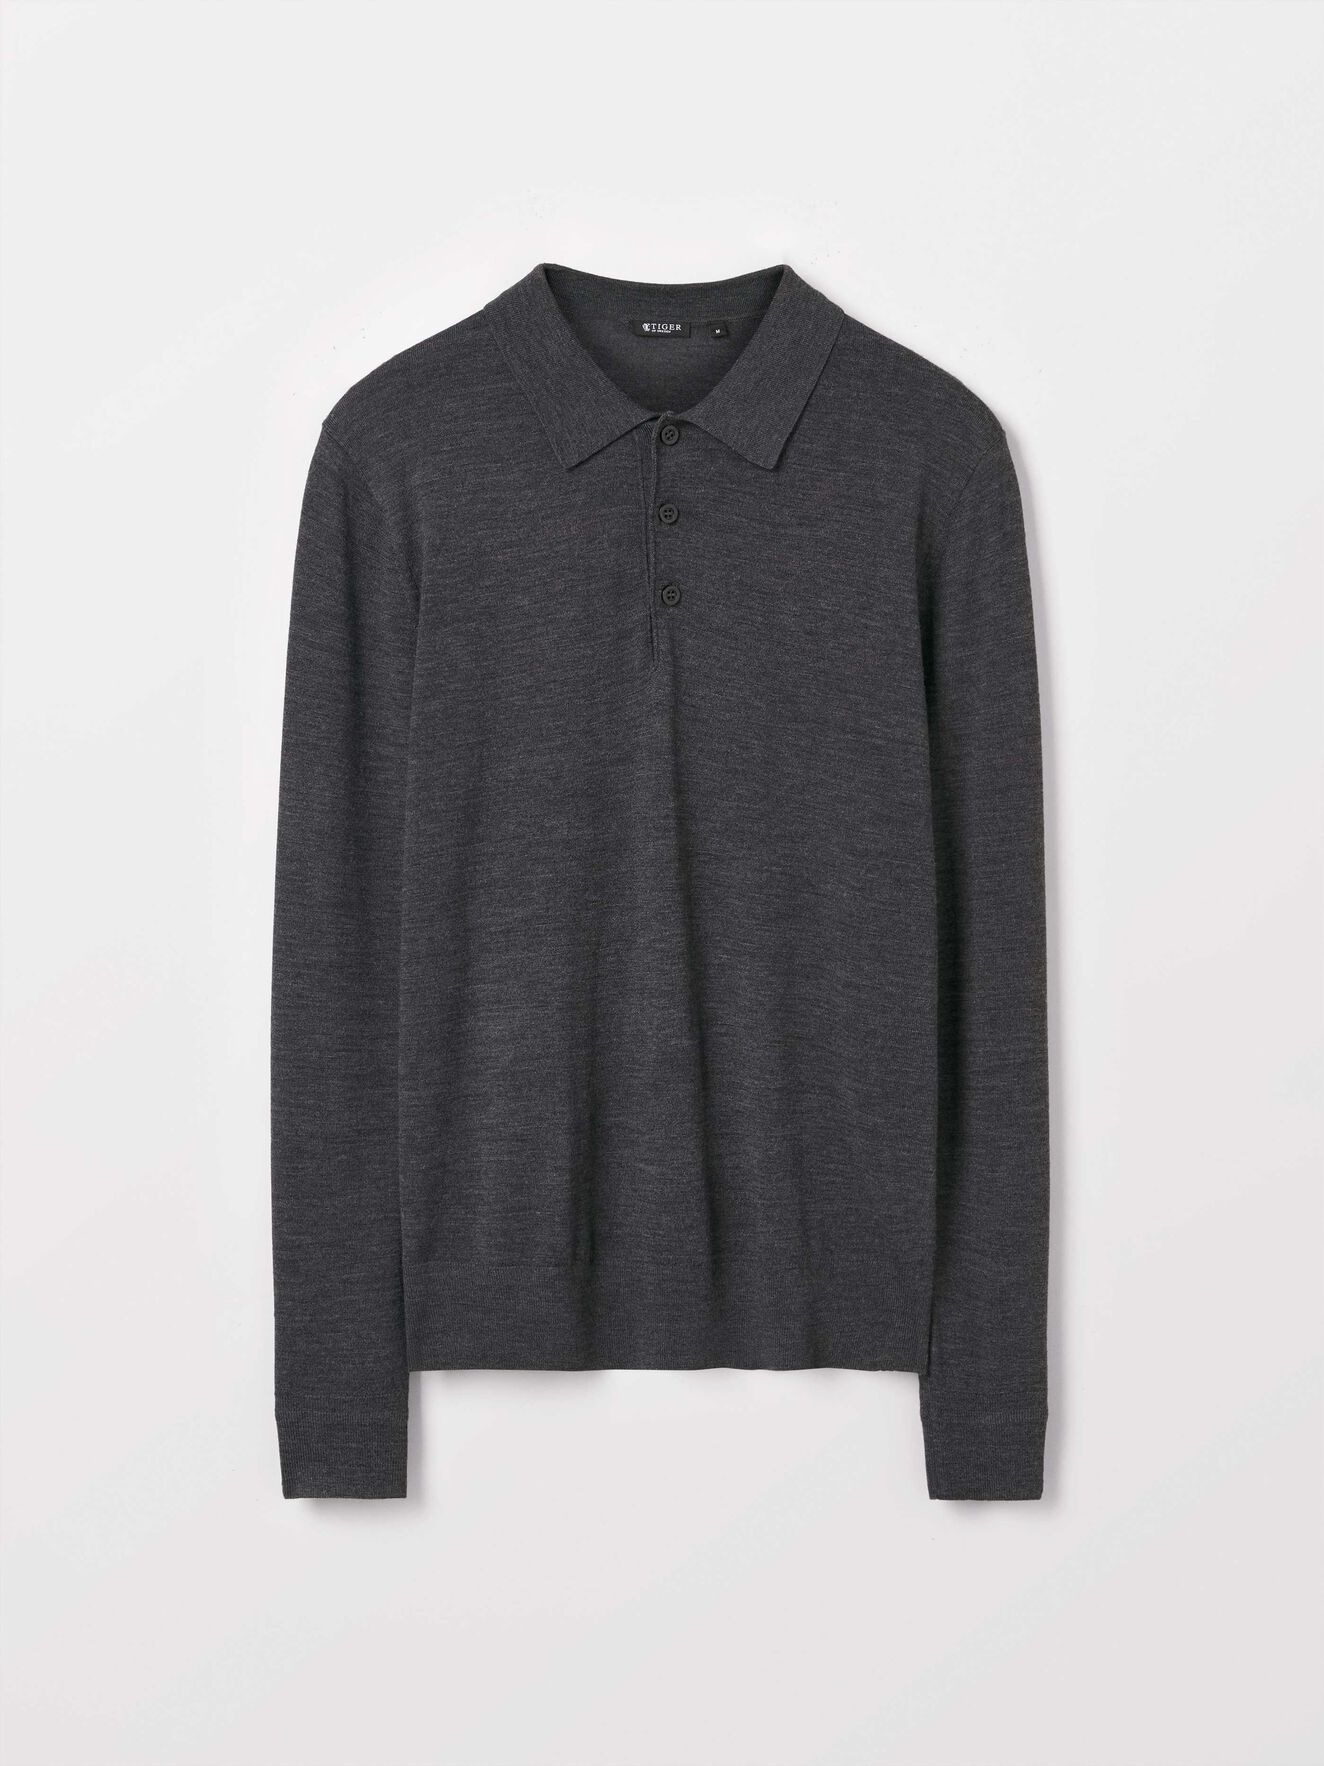 Newton Pullover in Med Grey Mel from Tiger of Sweden